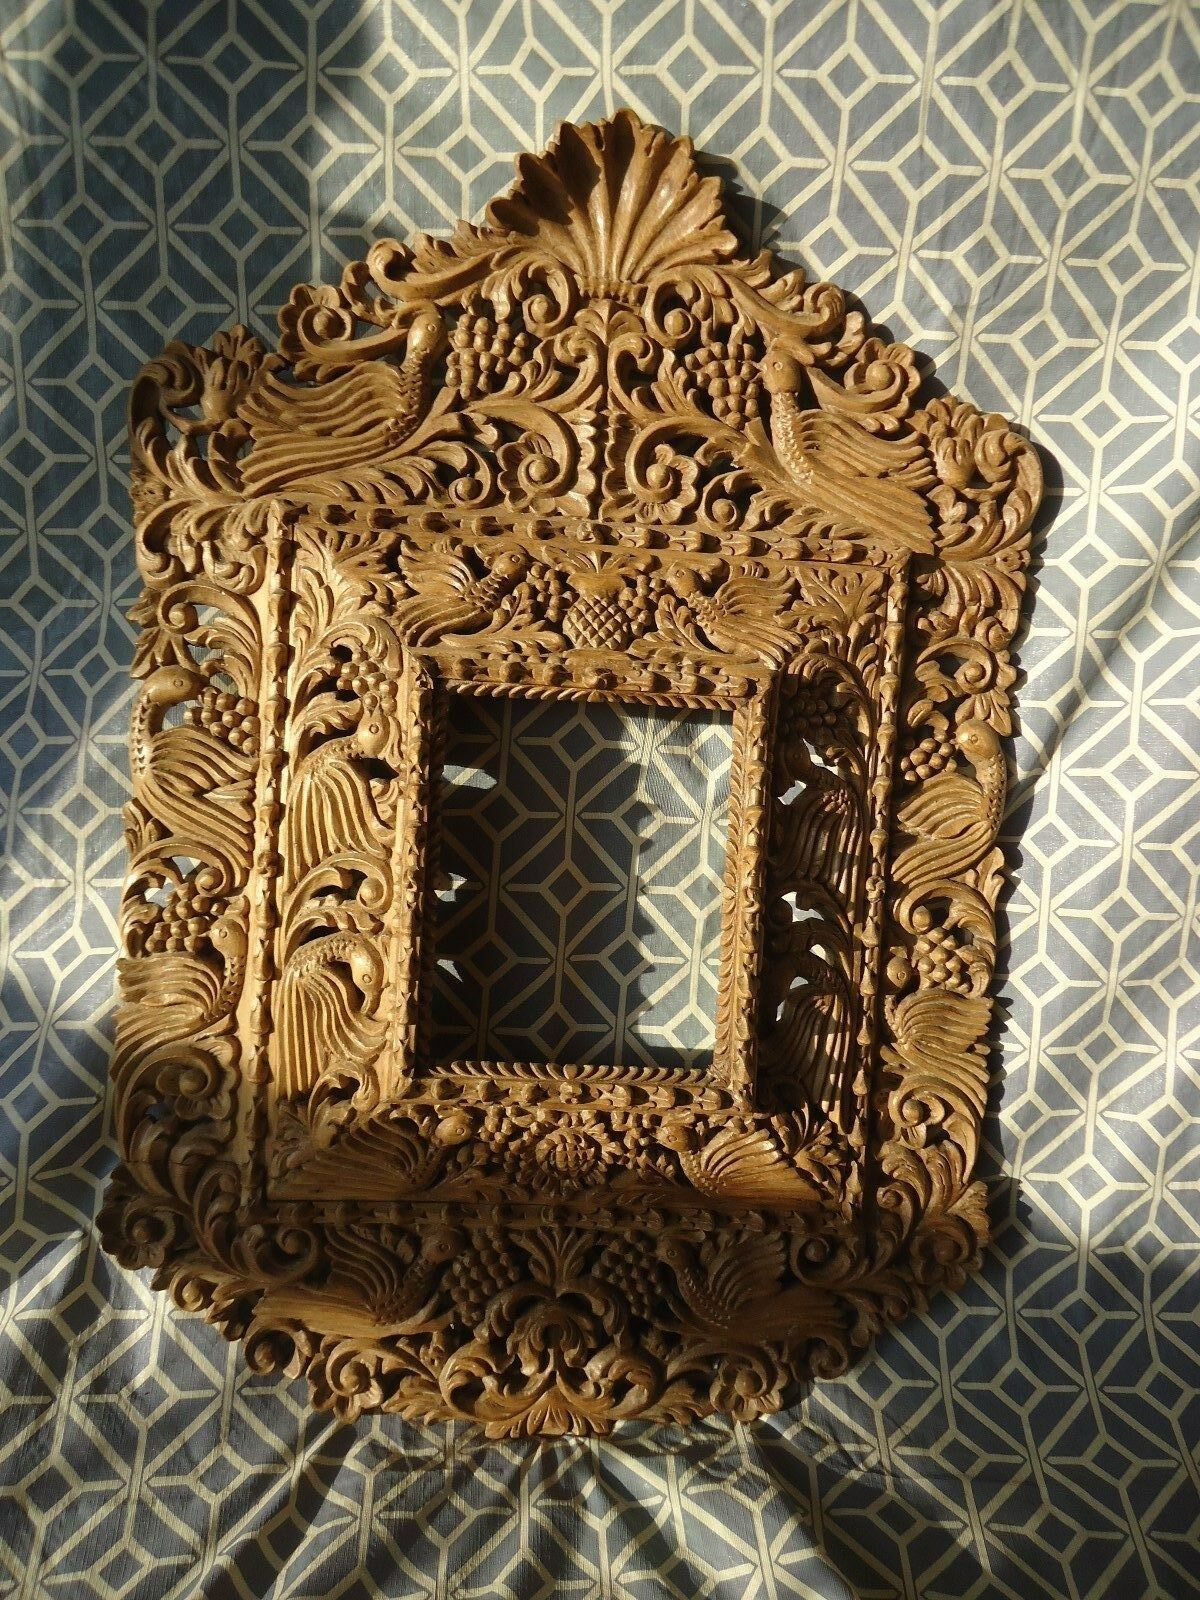 Hand carved wood ornate floral and birds baroque style for Baroque mirror canada